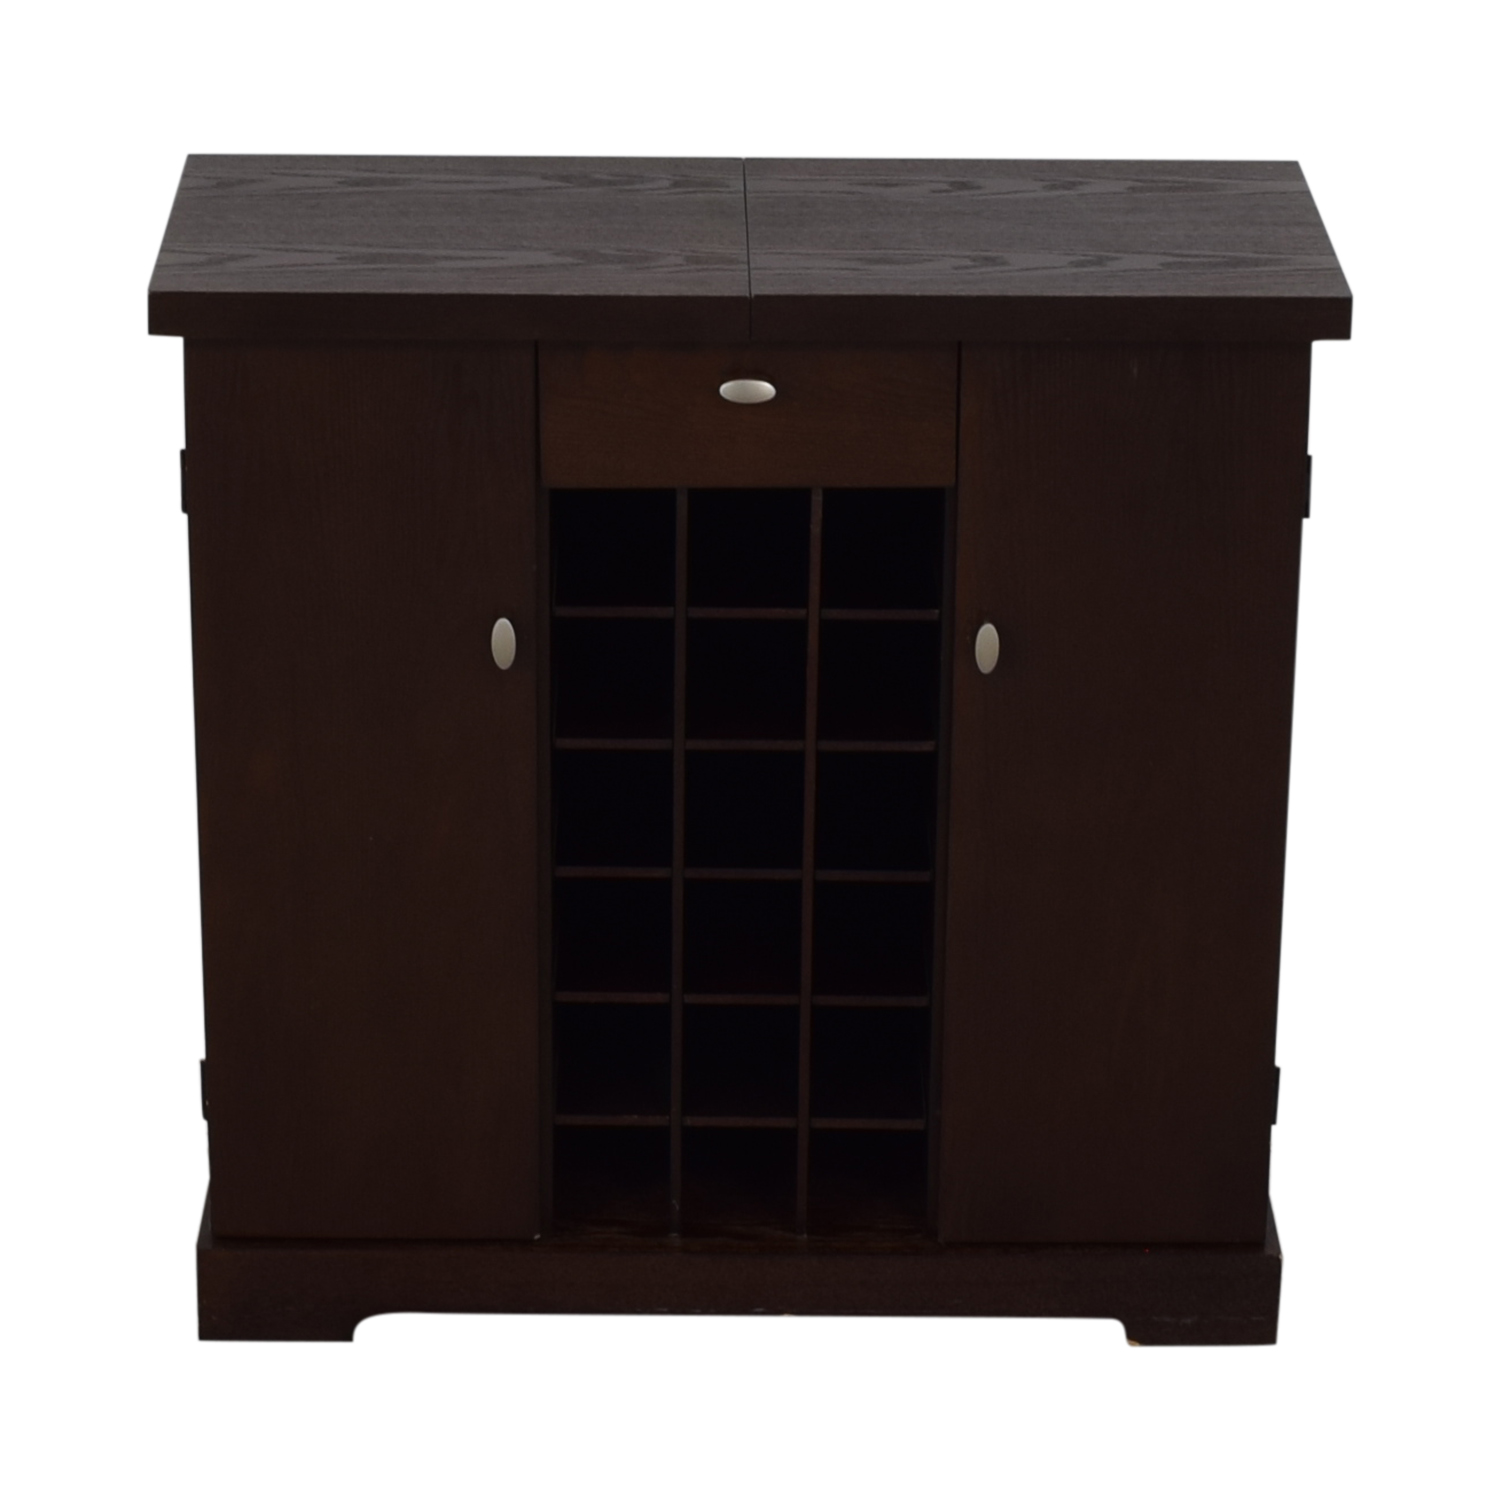 Crate & Barrel Crate & Barrel Bar Cabinet discount